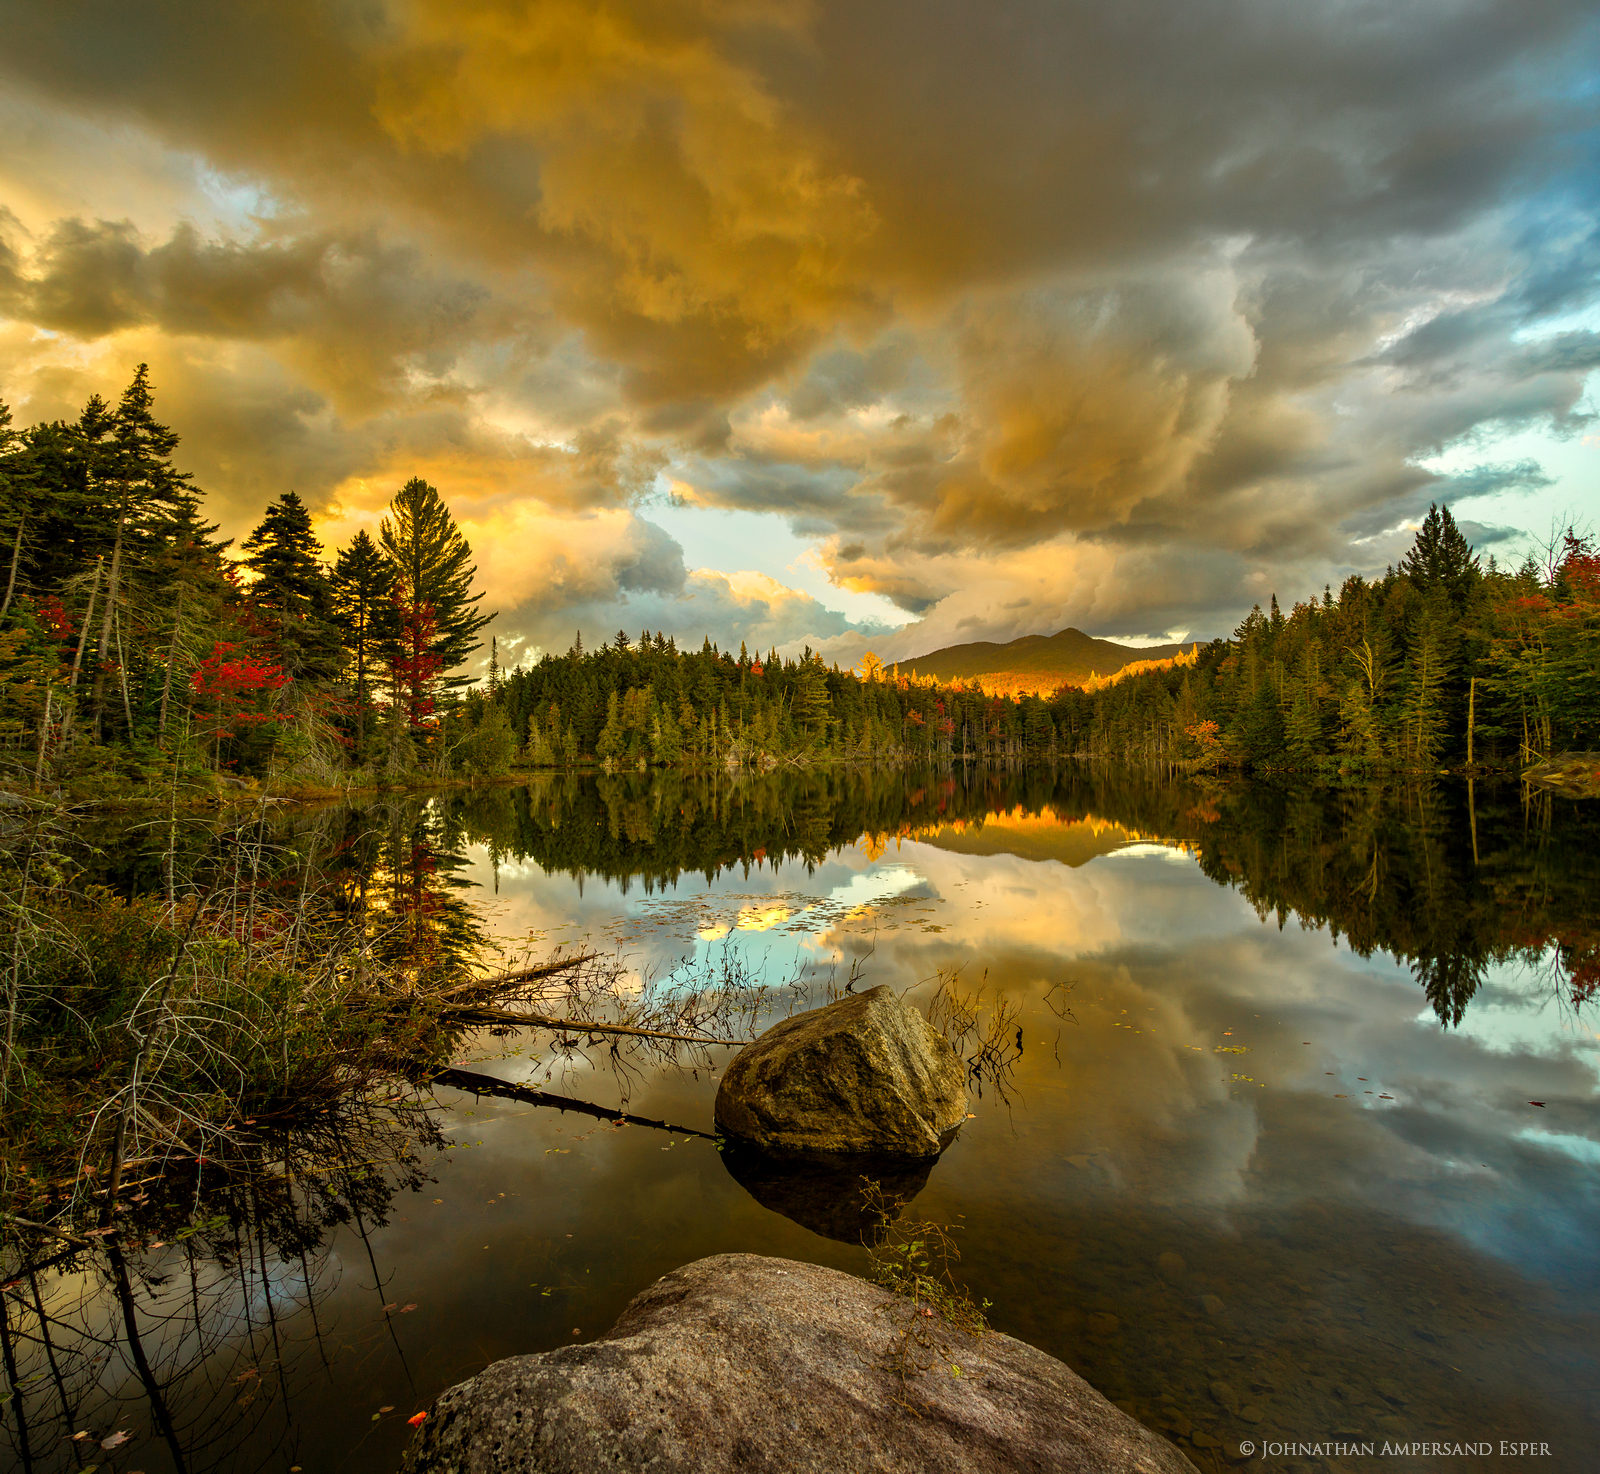 Boreas Pond,Boreas Ponds,sunset,reflection,dramatic,clouds,storm,stormclouds,red,autumn,2016,Boreas Mt, photo